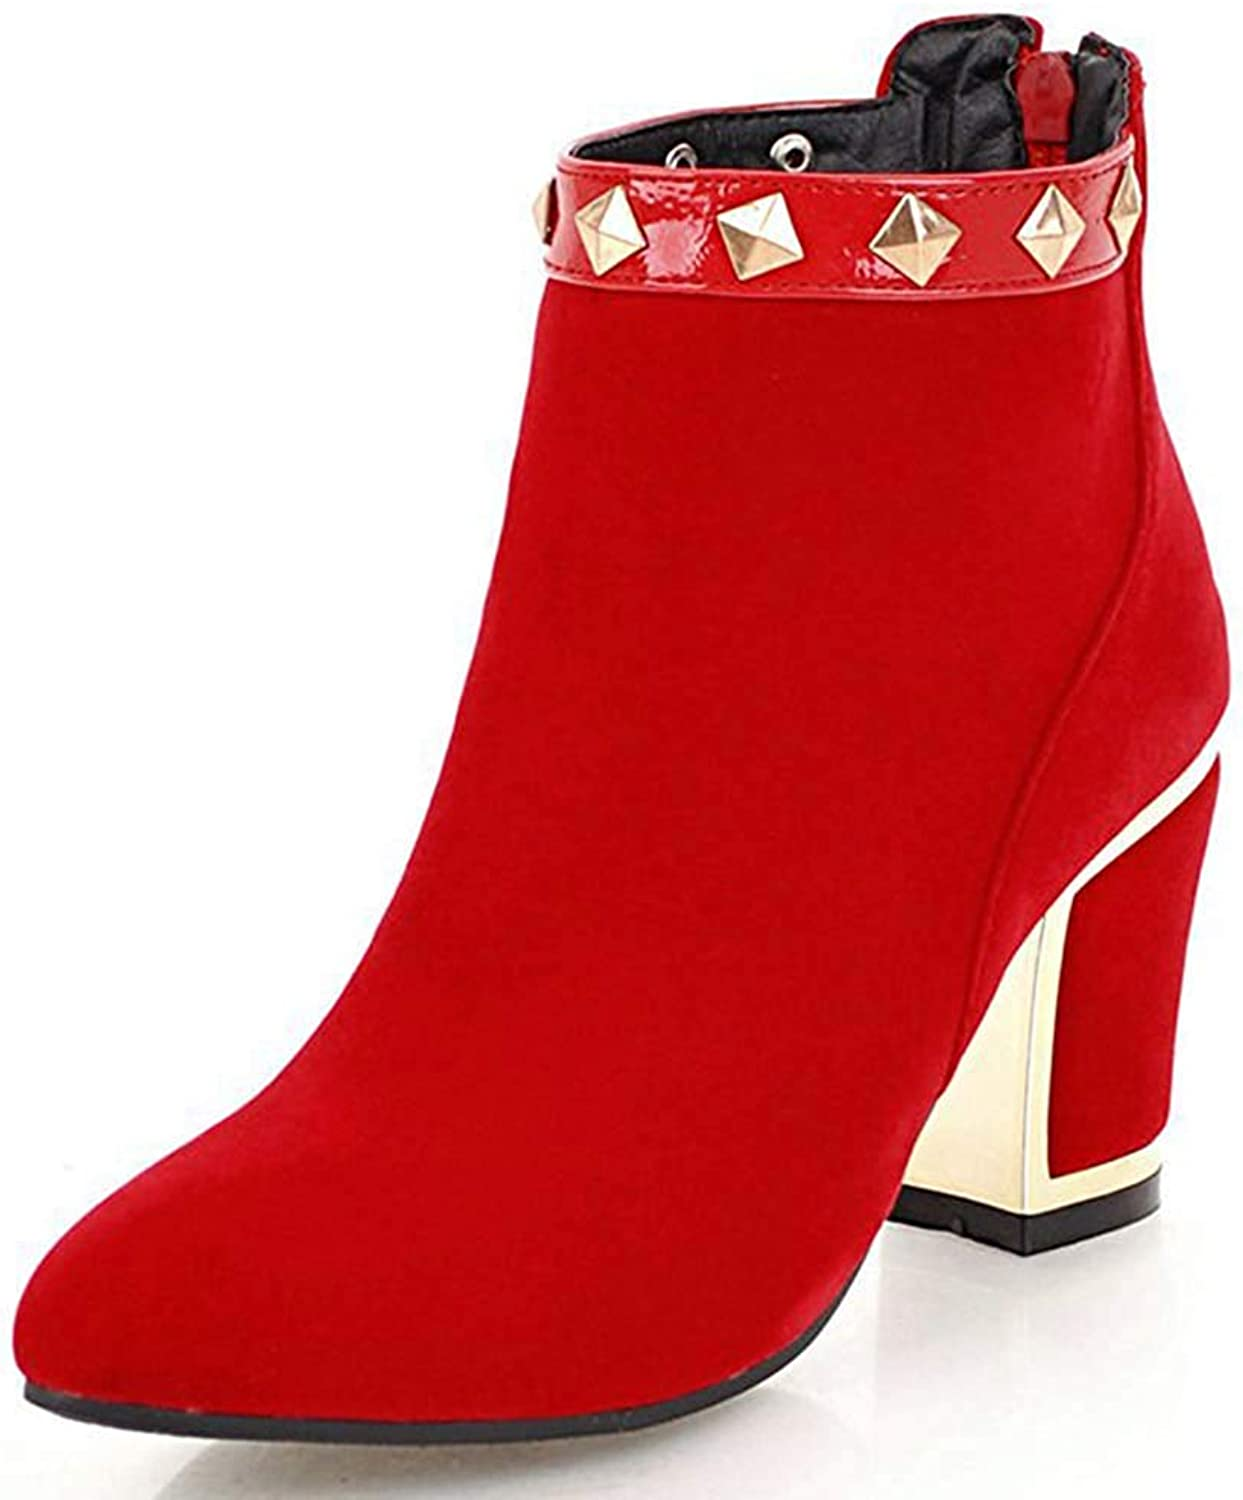 Ghssheh Women's Pointed Toe Ankle Booties - Studded Rivets Chunky High Heels- Back Zipper Short Boots Red 4.5 M US